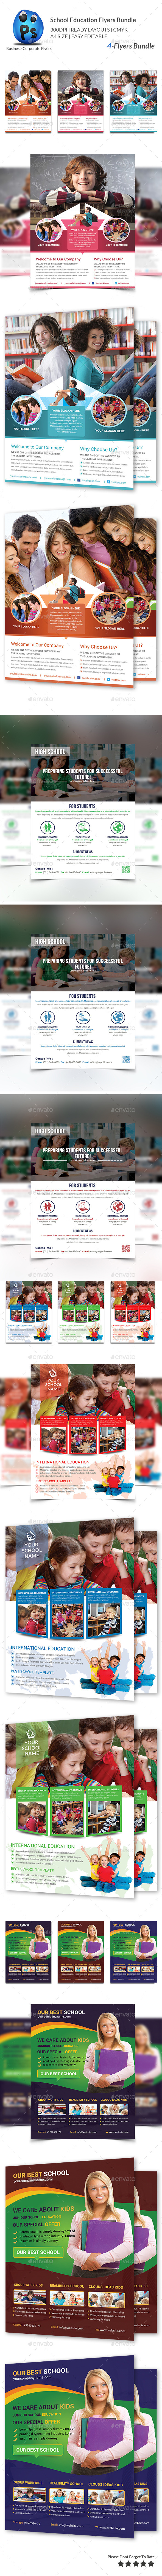 School Education 4 Flyers Bundle - Corporate Brochures